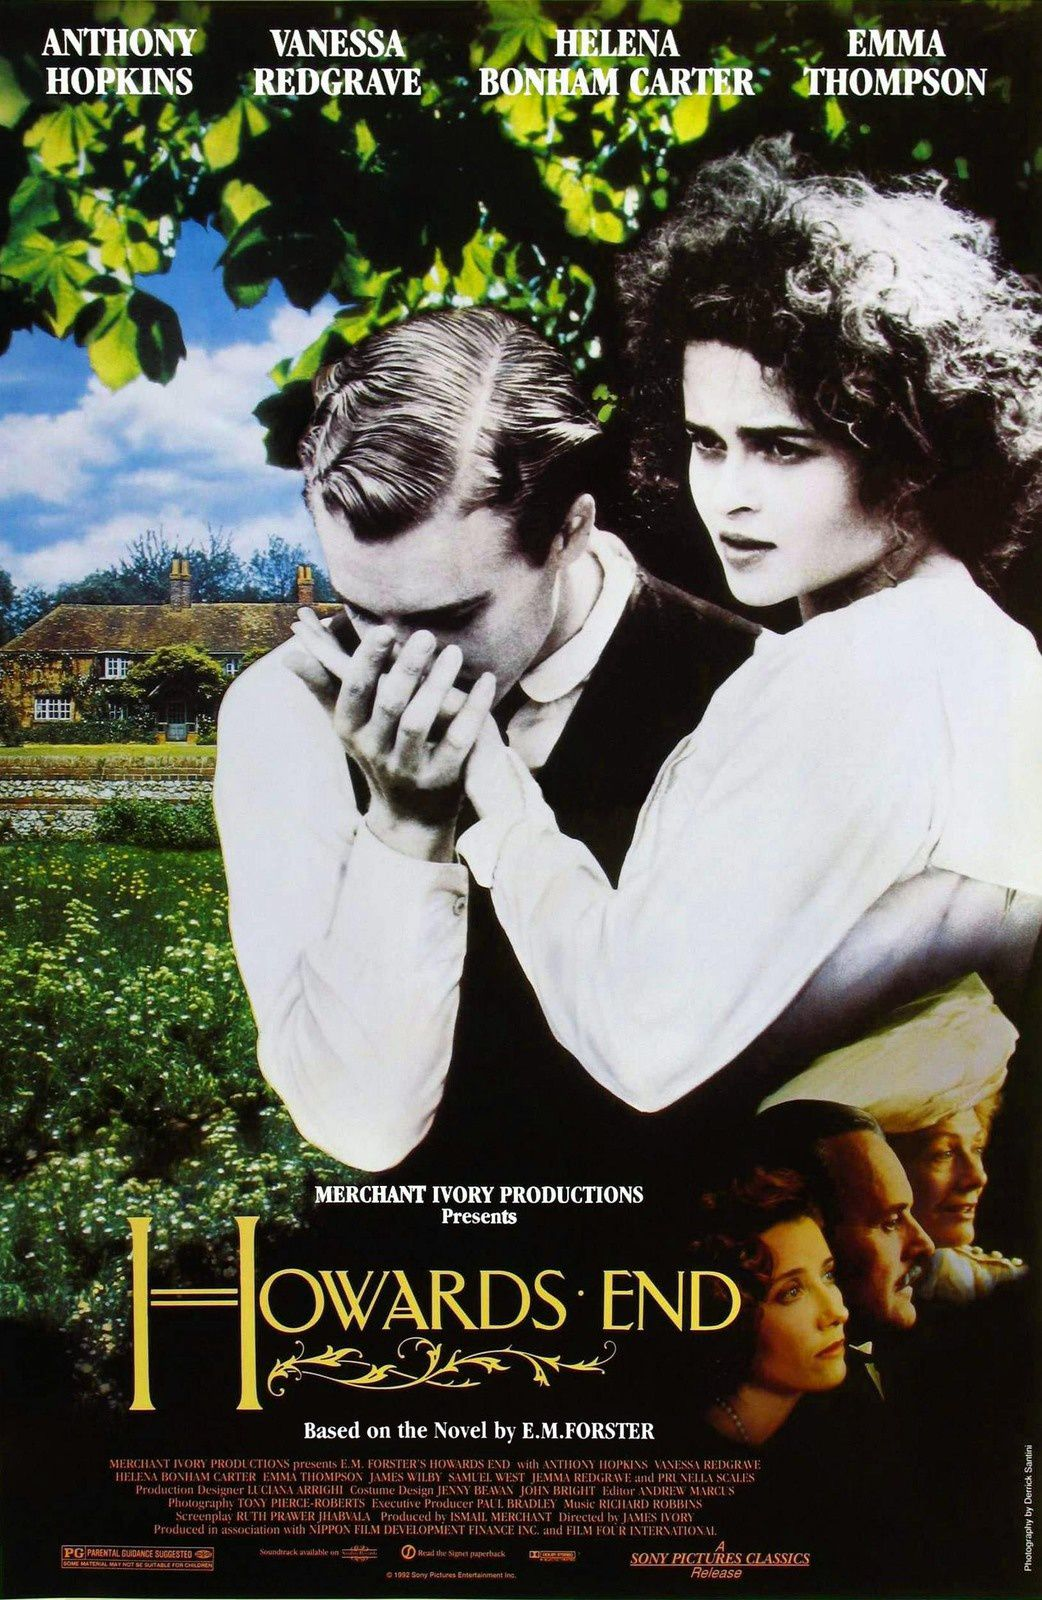 Retour à Howards End / CINEMA / GRAND CLASSIQUE / JAMES IVORY